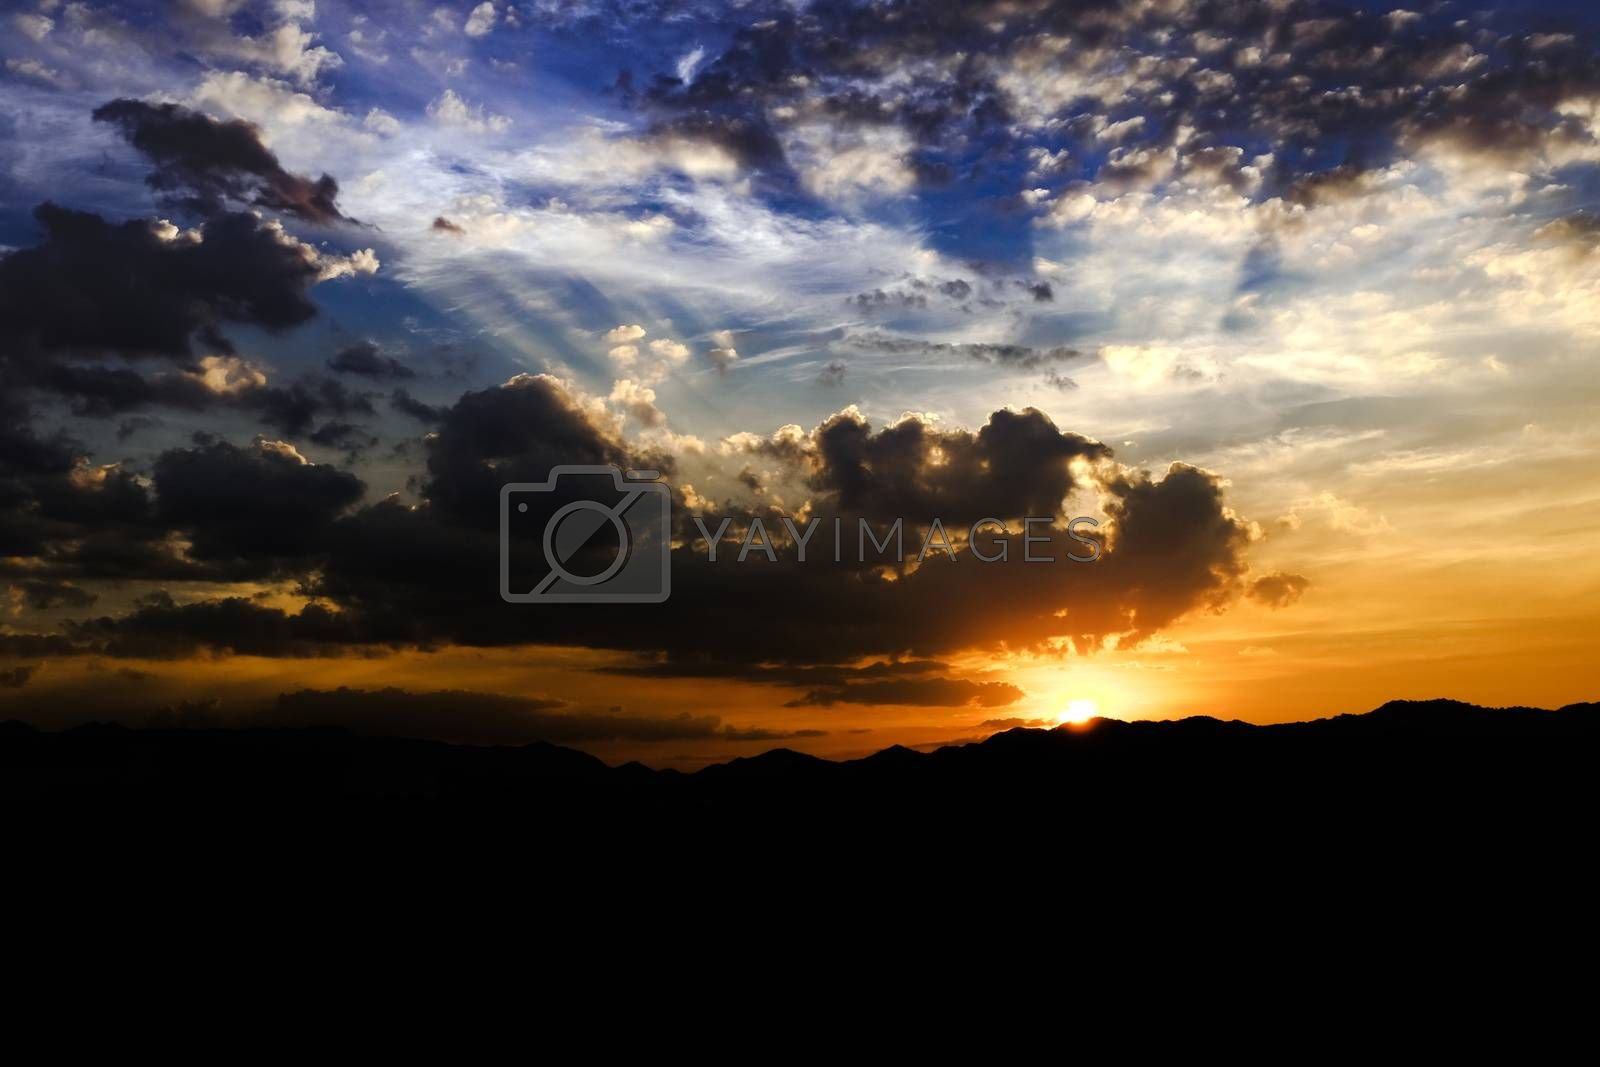 skie clouds sunset and sunlight background